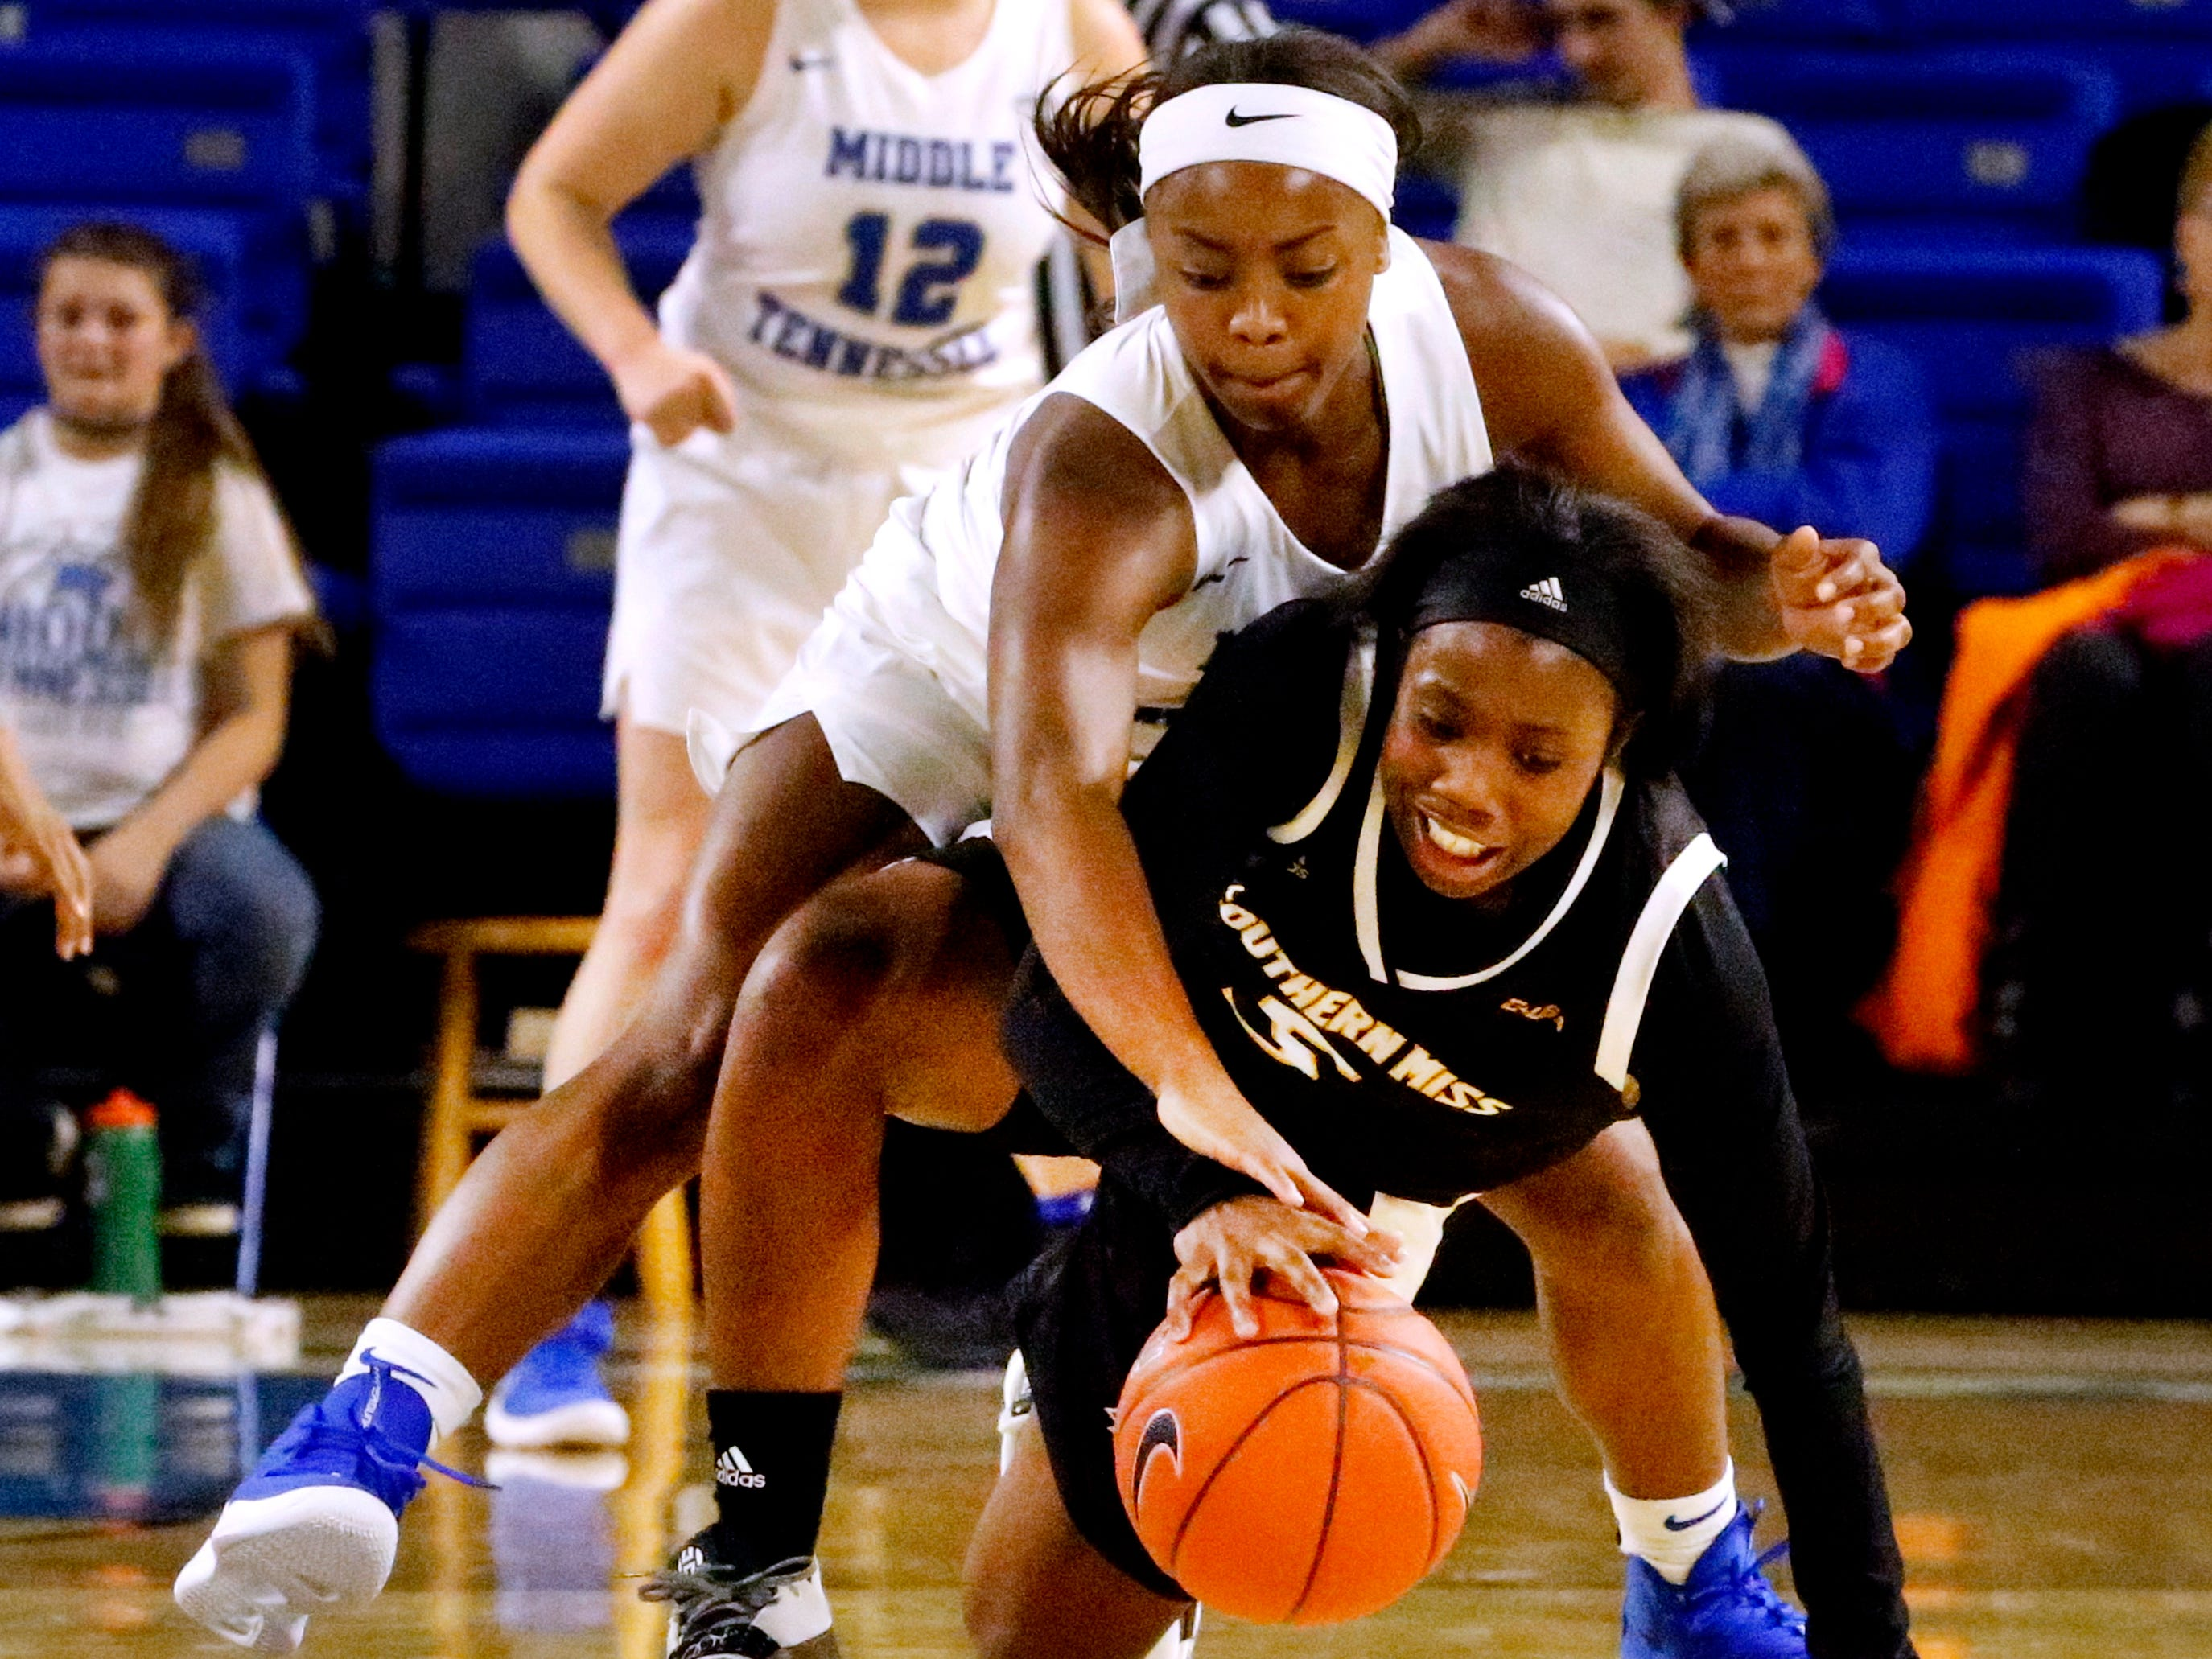 Southern Miss' Shonte Hailes (5) falls to the ground while dribbling as MTSU's guard Taylor Sutton (2) tries to steal the ball away, on Thursday Jan. 10, 2019.